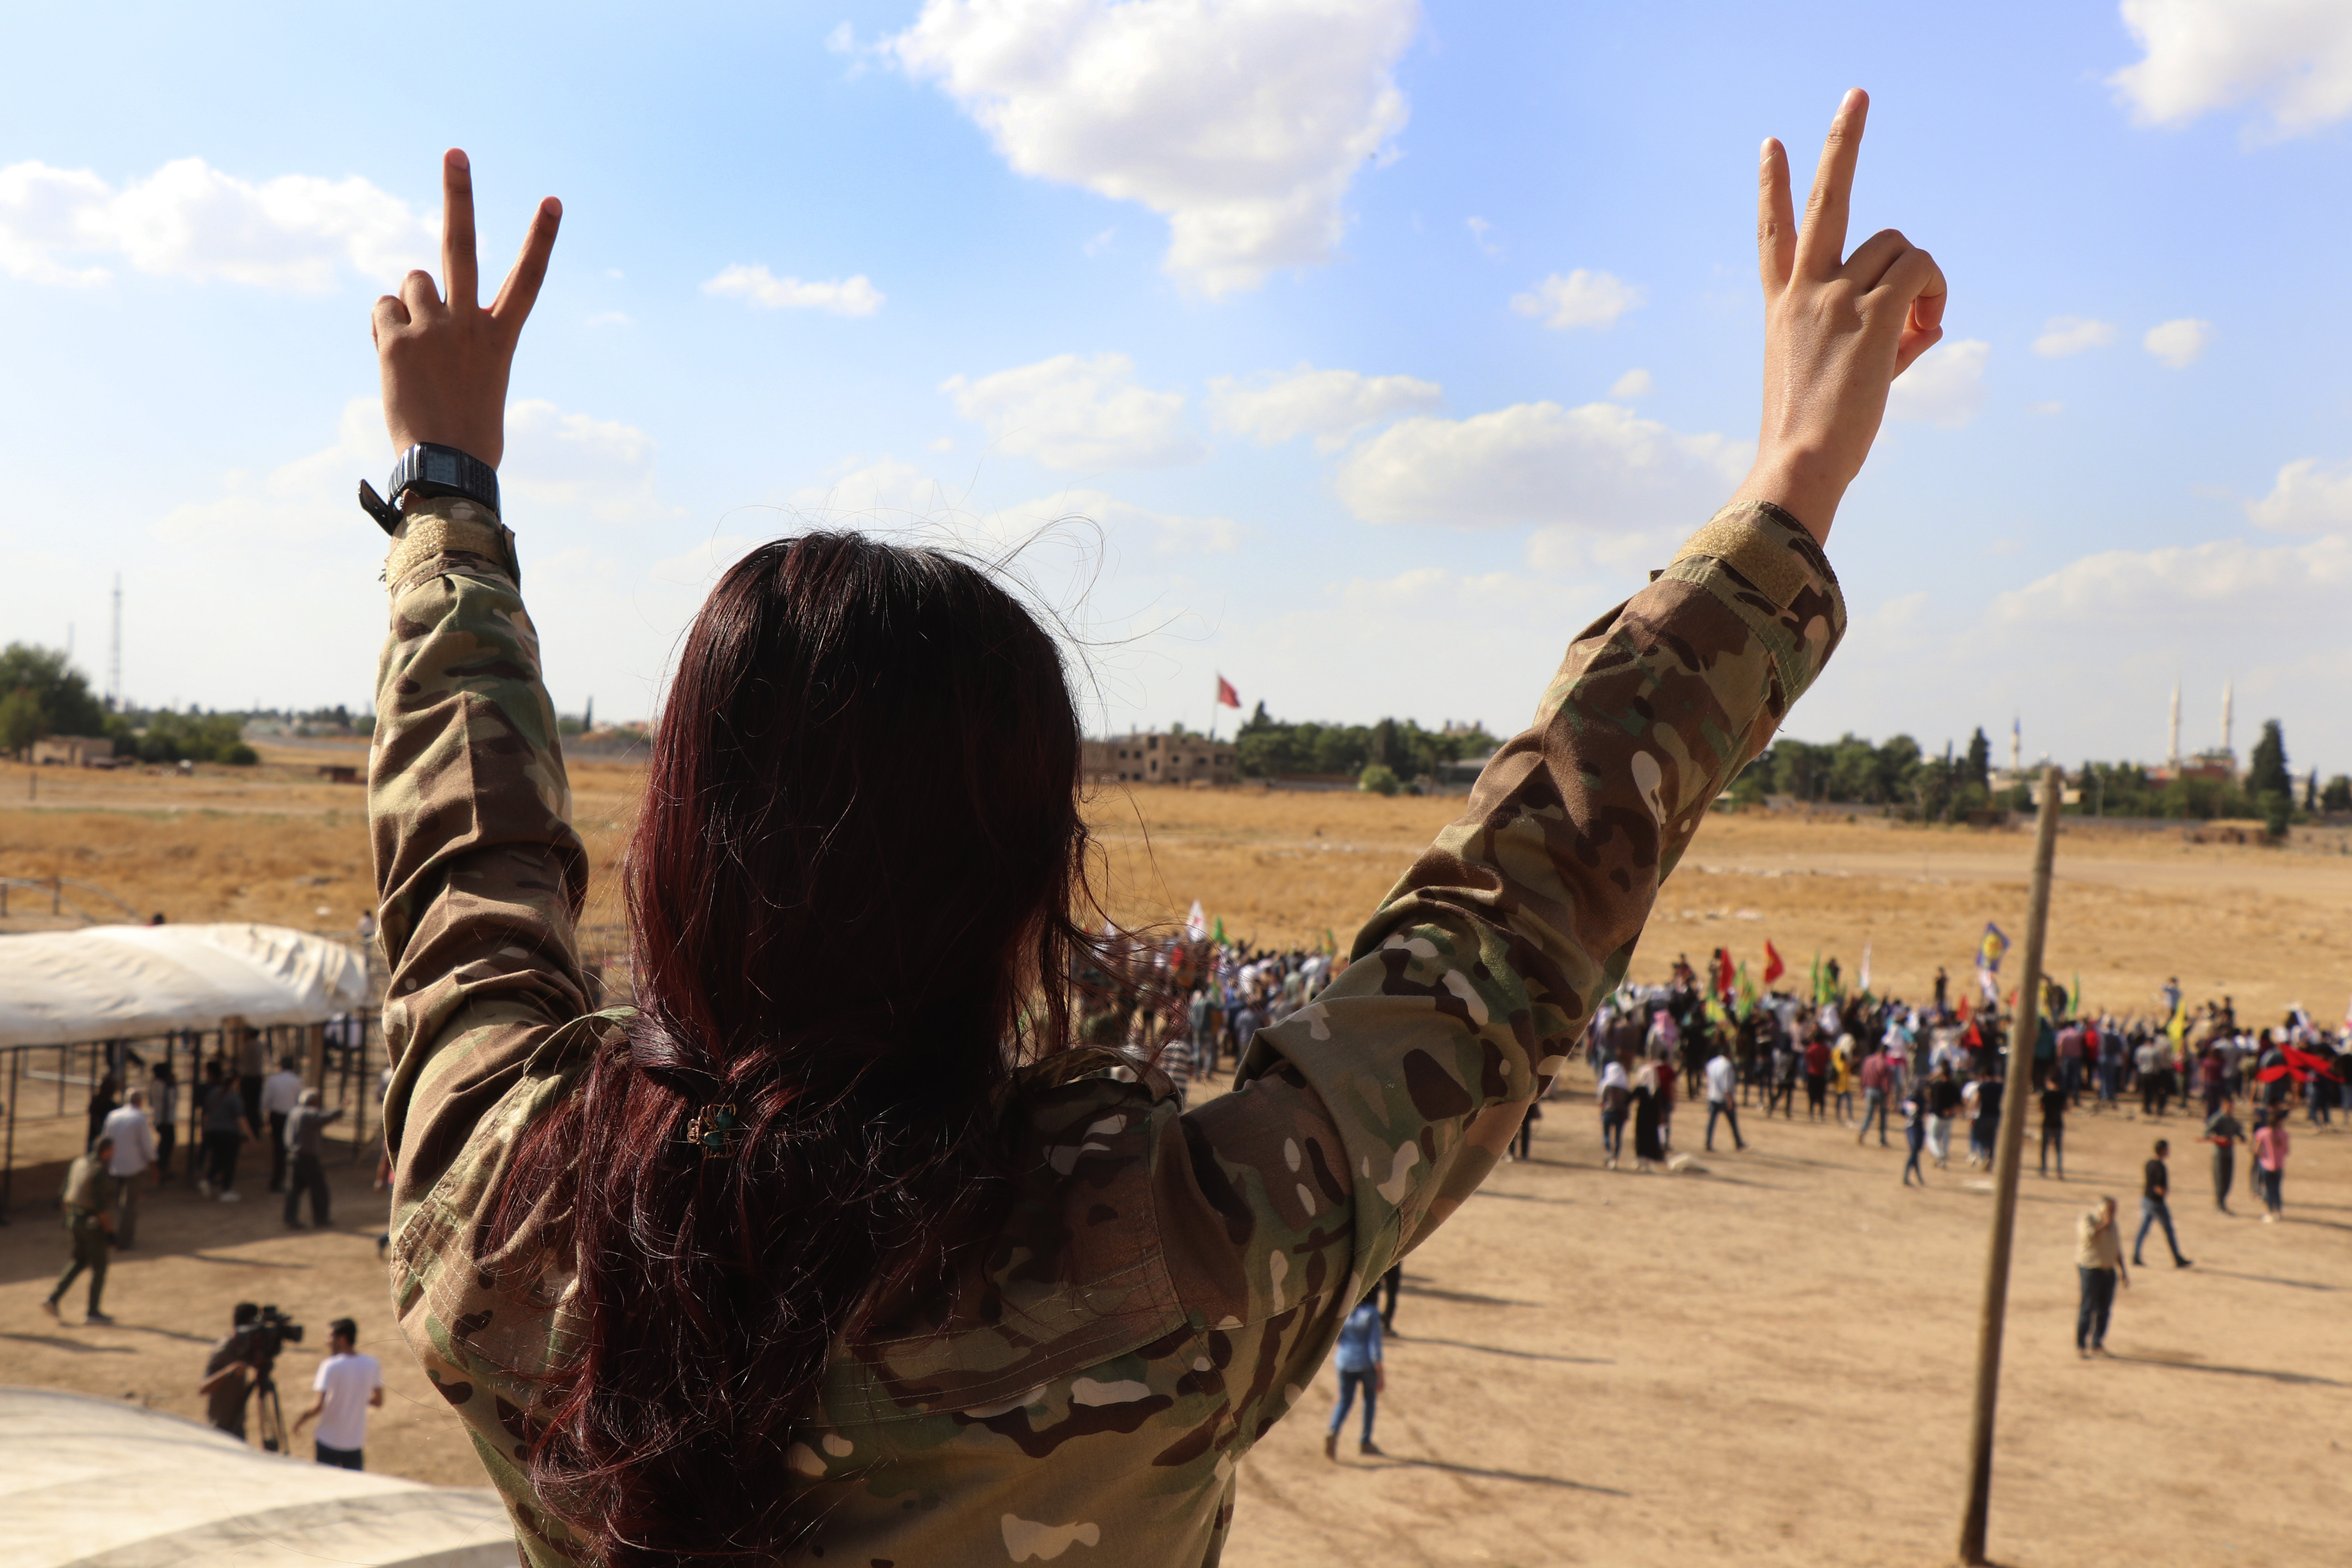 A fighter from the Syrian Democratic Forces, SDF, flashes the victory sign during a demonstration against possible Turkish military operation on their areas, at the Syrian-Turkish border, in Ras al-Ayn, Syria, Monday, Oct. 7, 2019. Syria's Kurds accused the U.S. of turning its back on its allies and risking gains made in the fight against the Islamic State group as American troops began pulling back on Monday from positions in northeastern Syria ahead of an expected Turkish assault. (AP Photo)